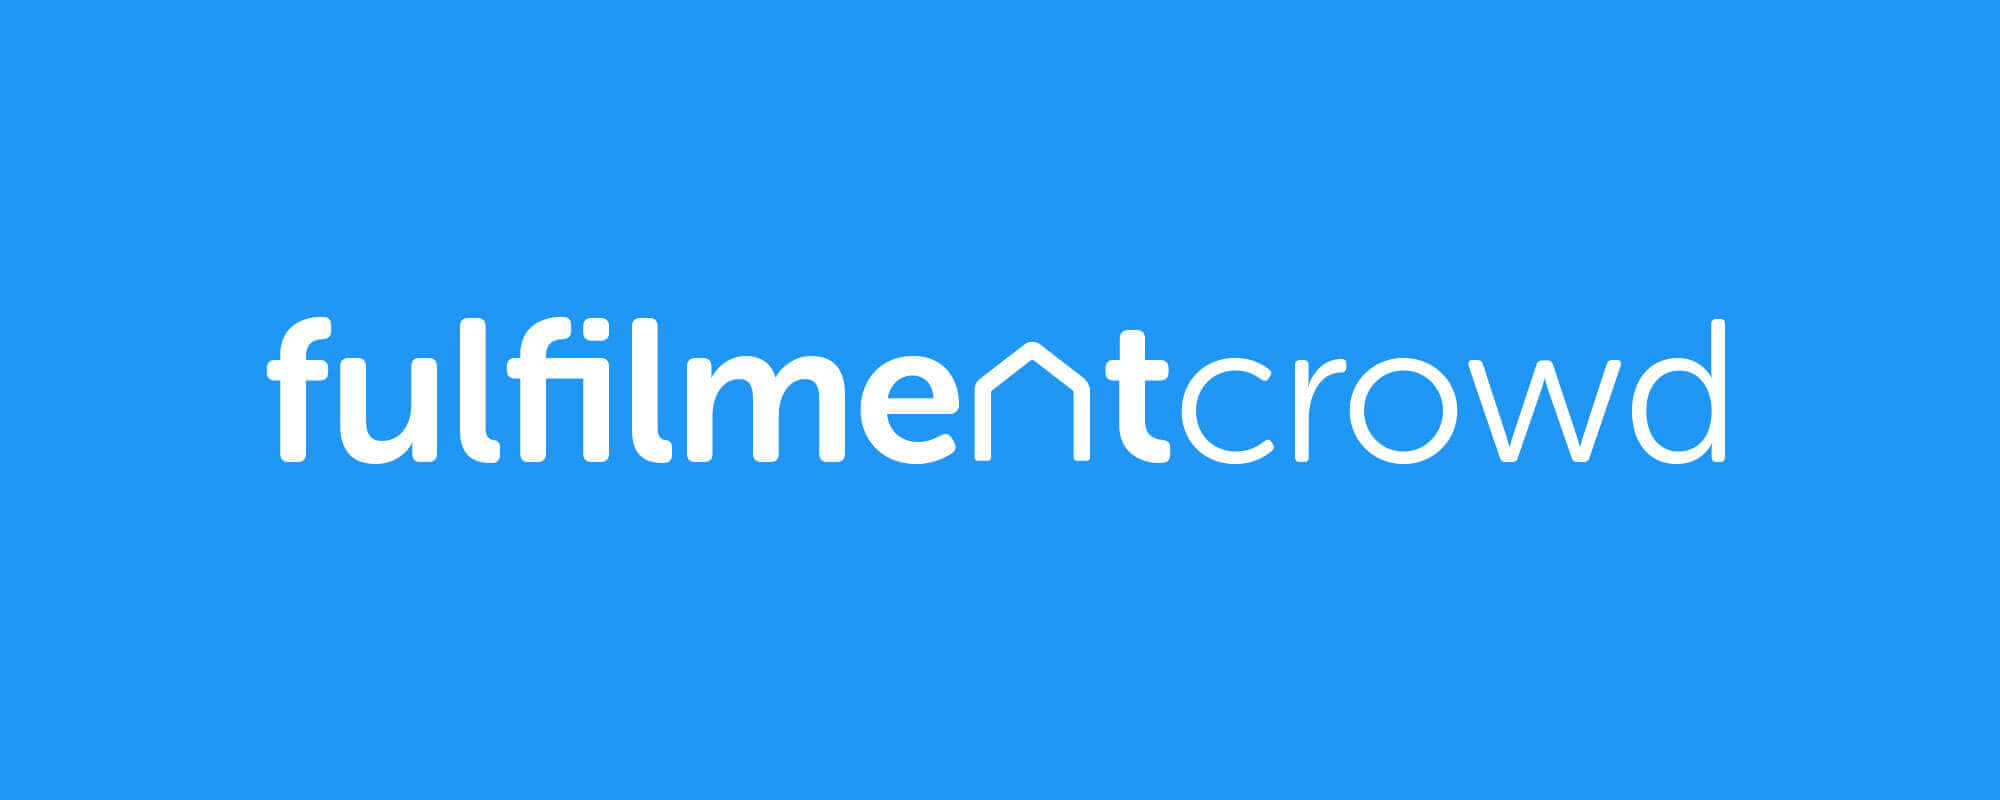 fulfilmentcrowd offering scalable end to end solutions